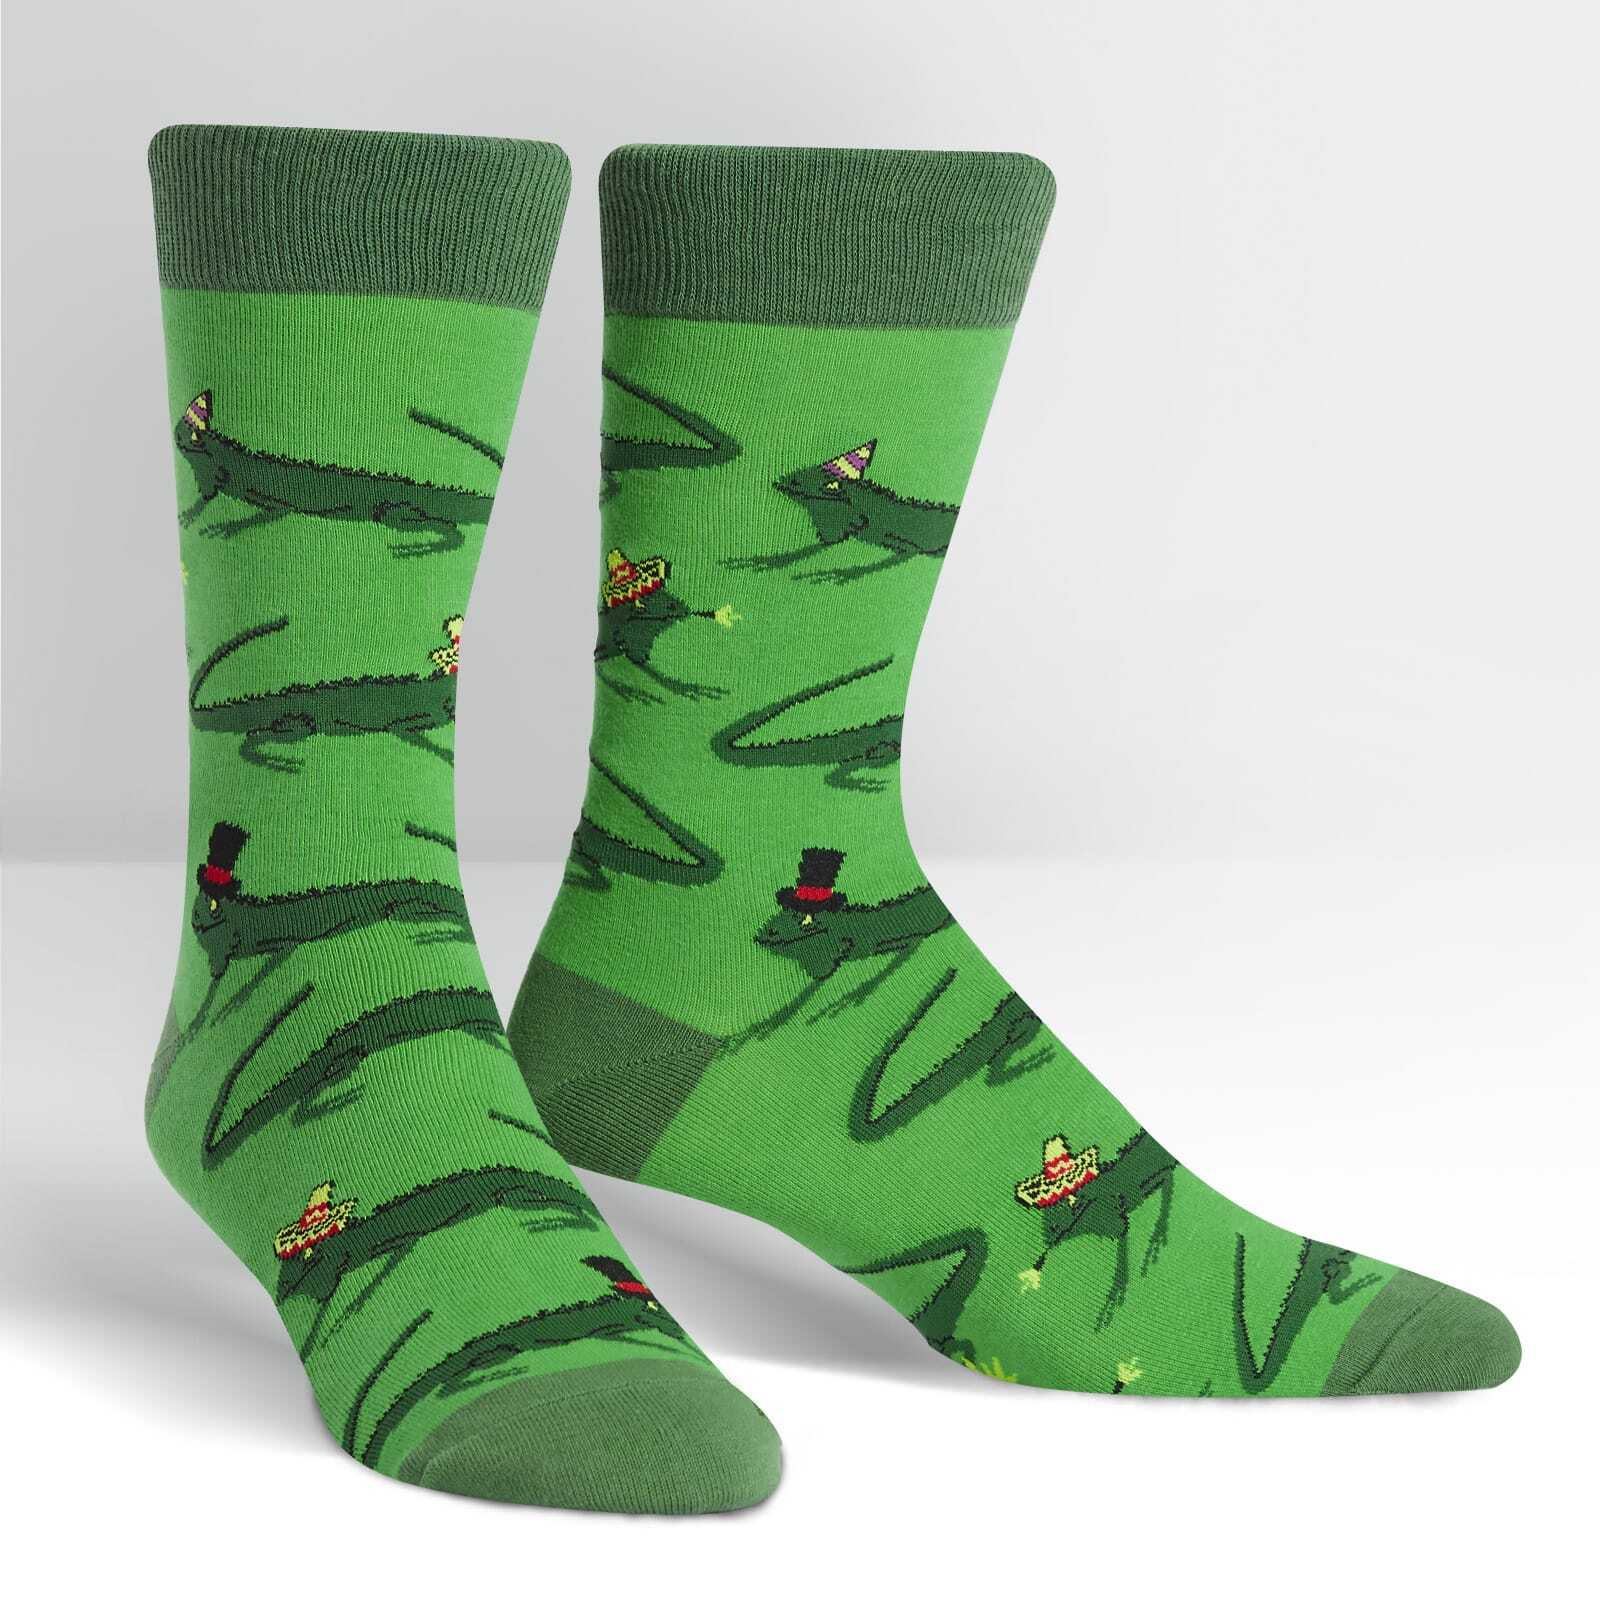 Iguana Party - Party Animal Green Men's Crew Socks - Sock It to Me in Green